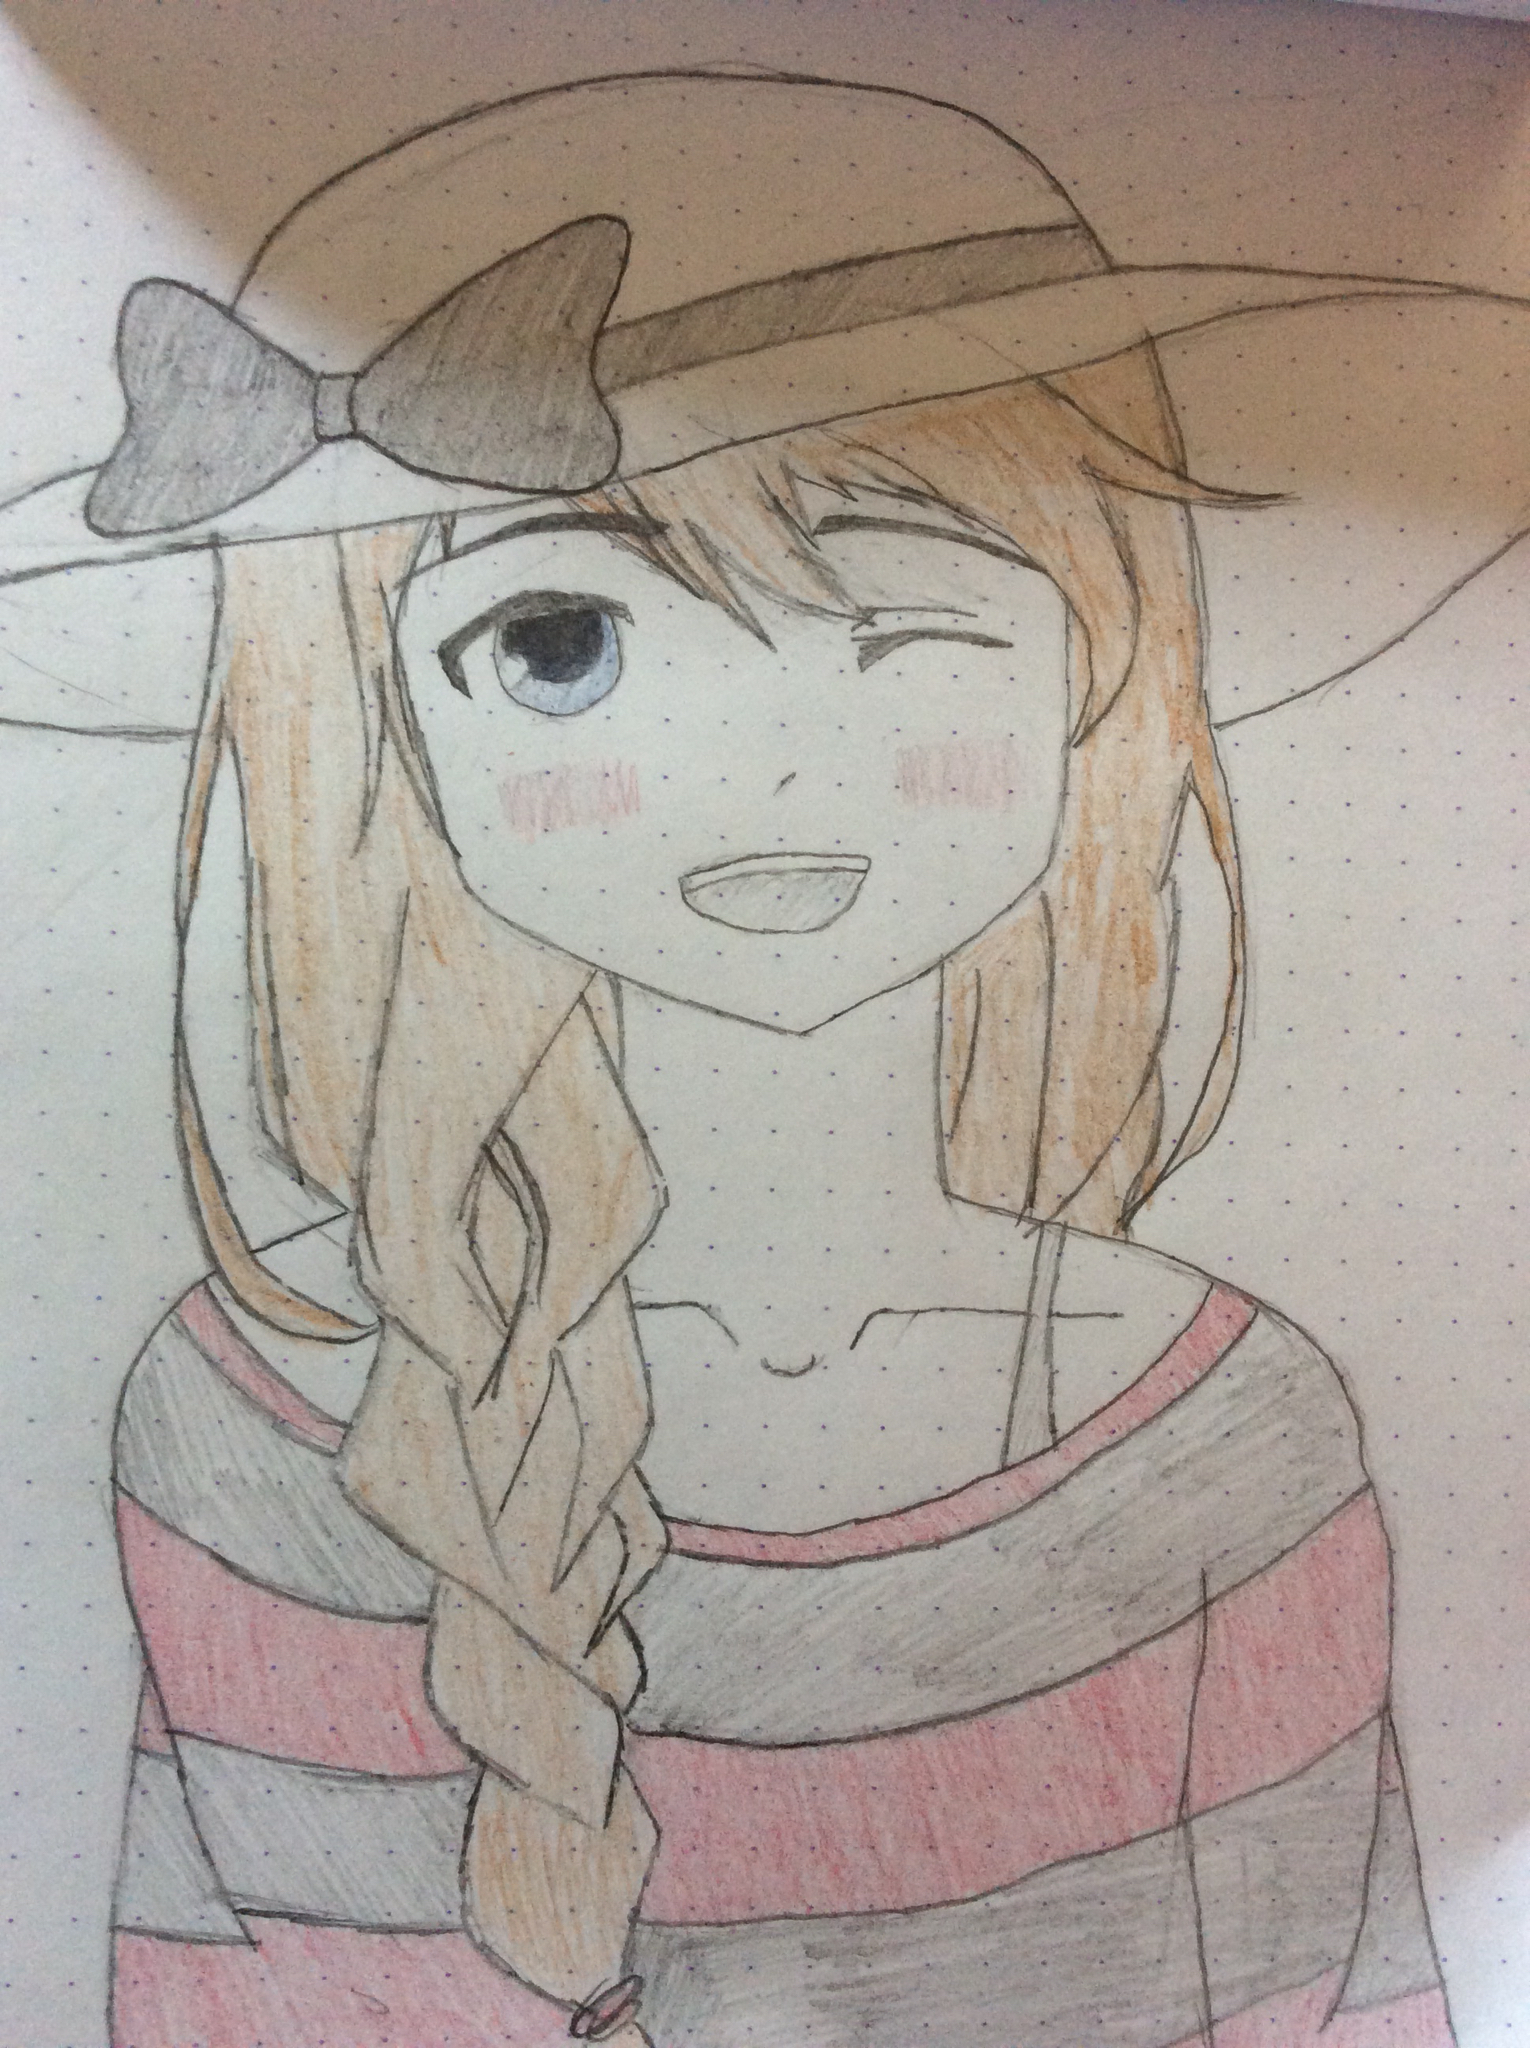 Anime Hat Drawing At Getdrawings Com Free For Personal Use Anime